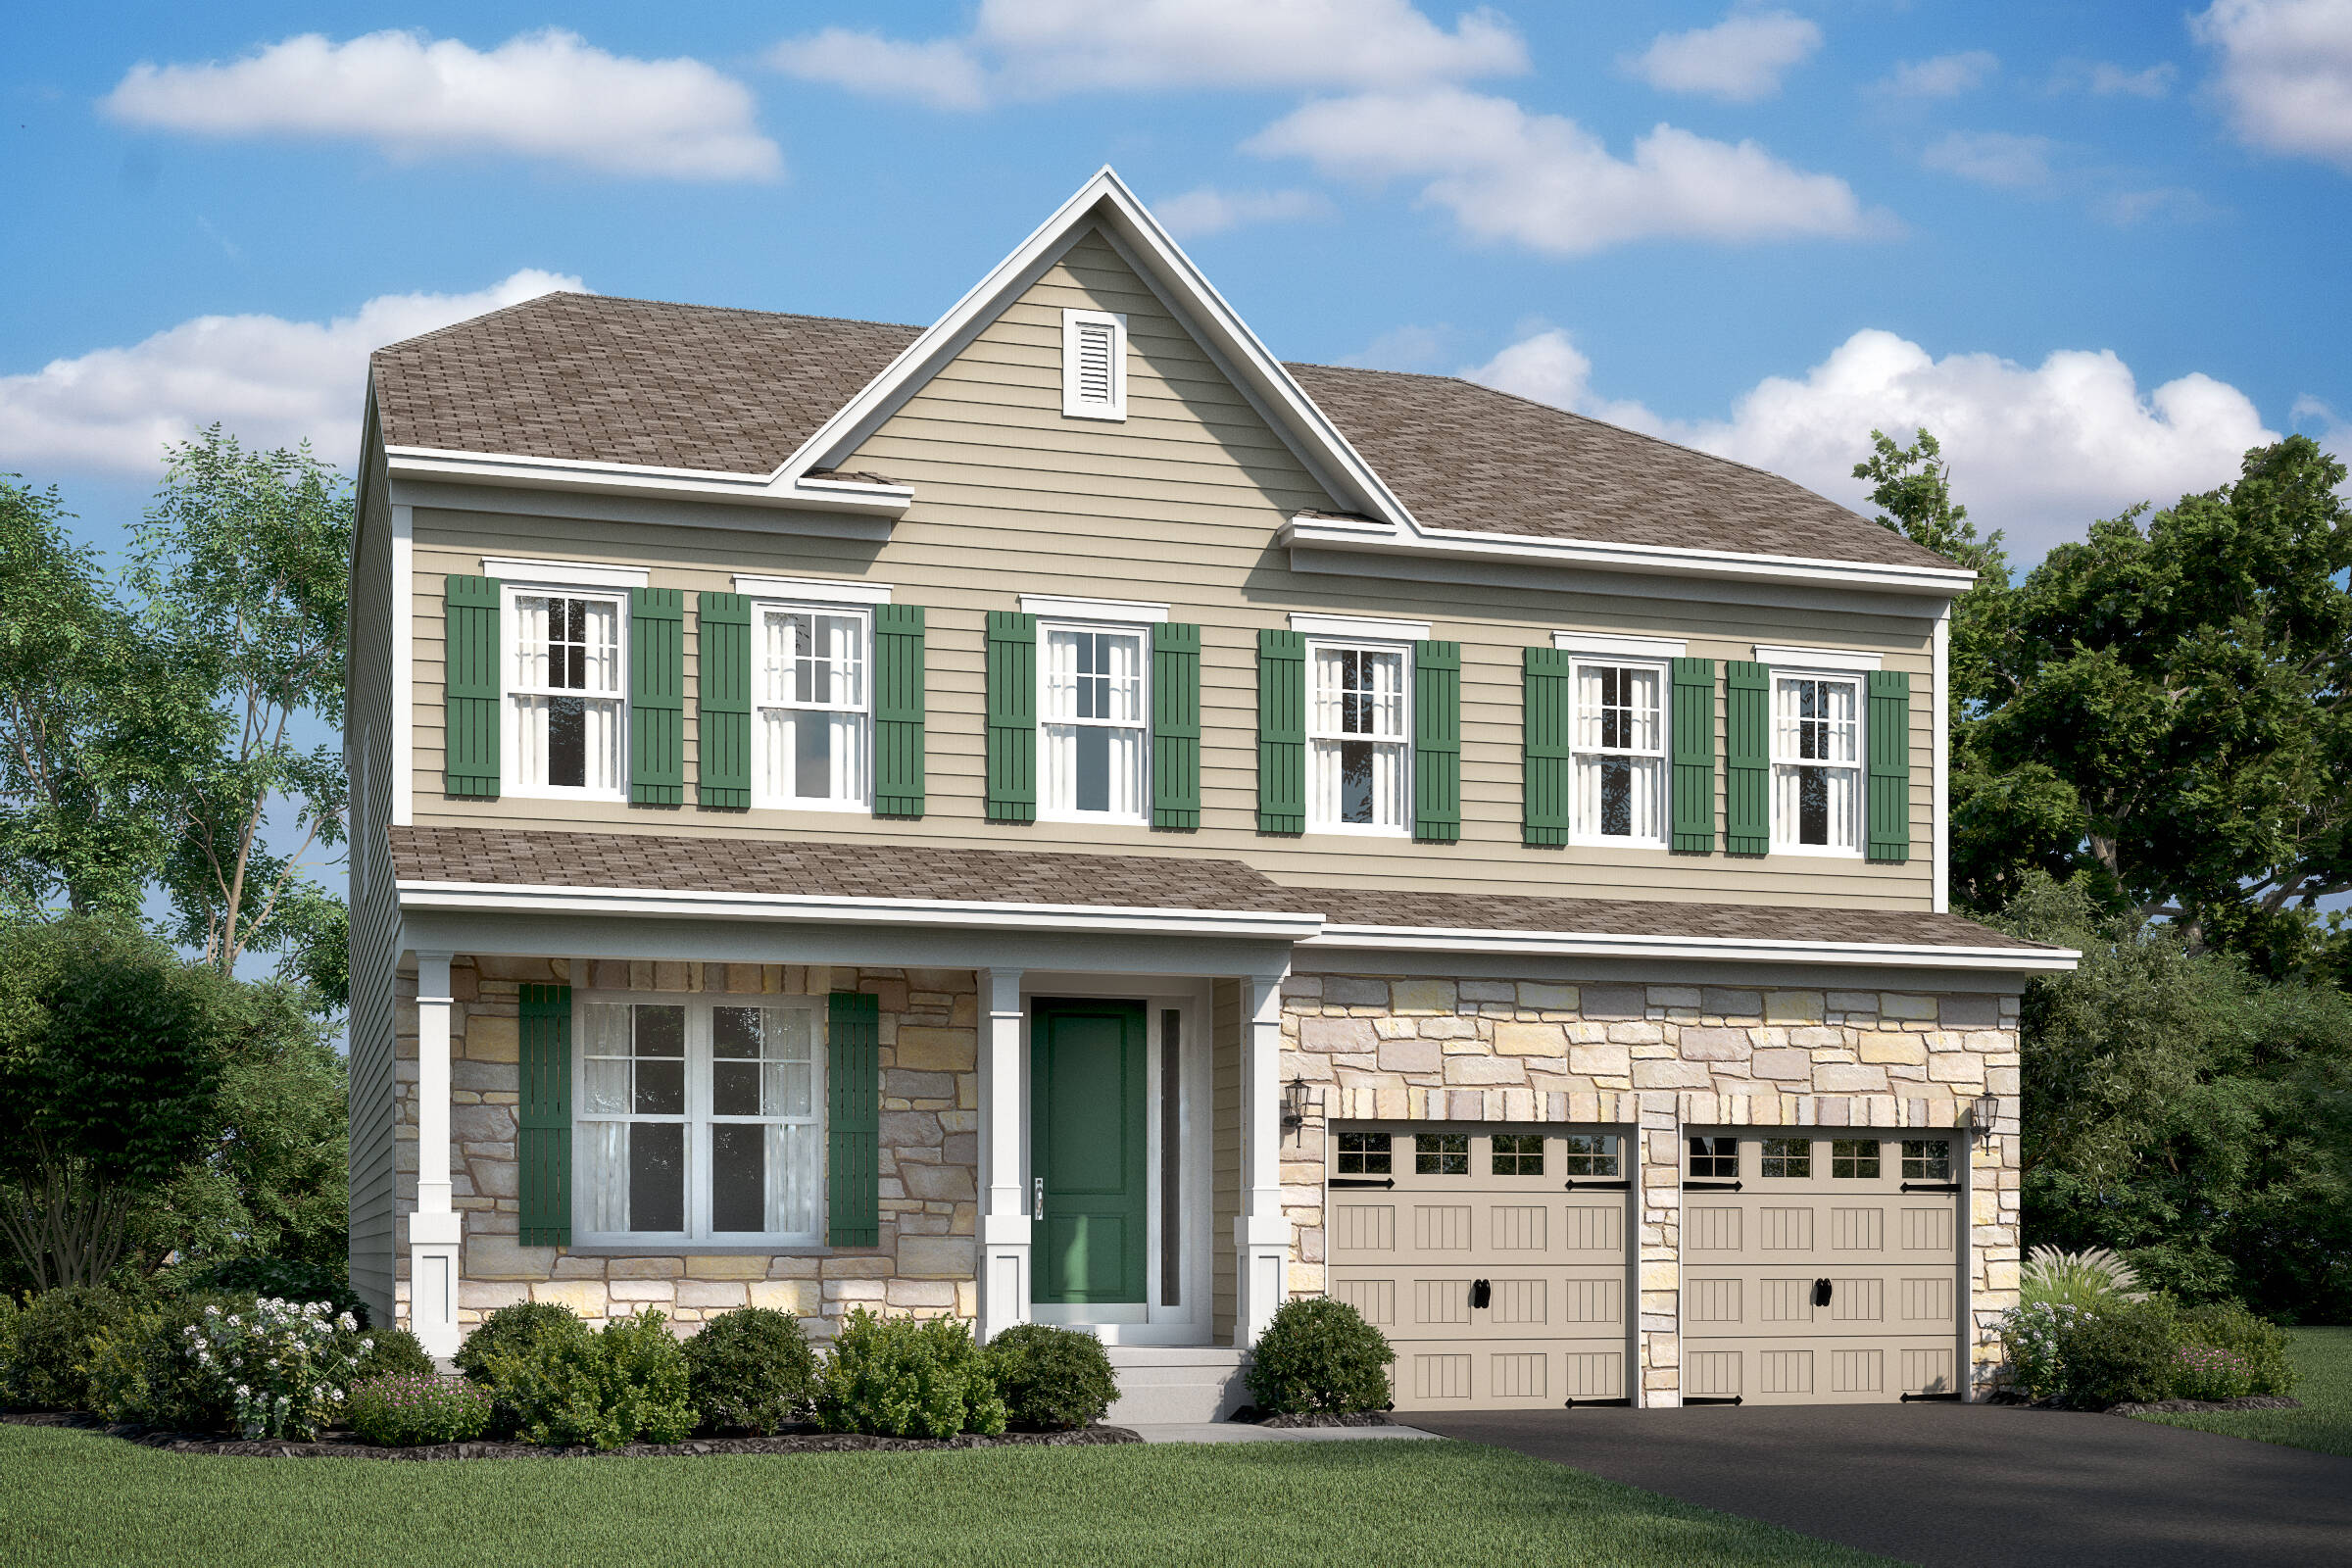 lexington-dt-new-homes-at-eden-terrace-in-maryland